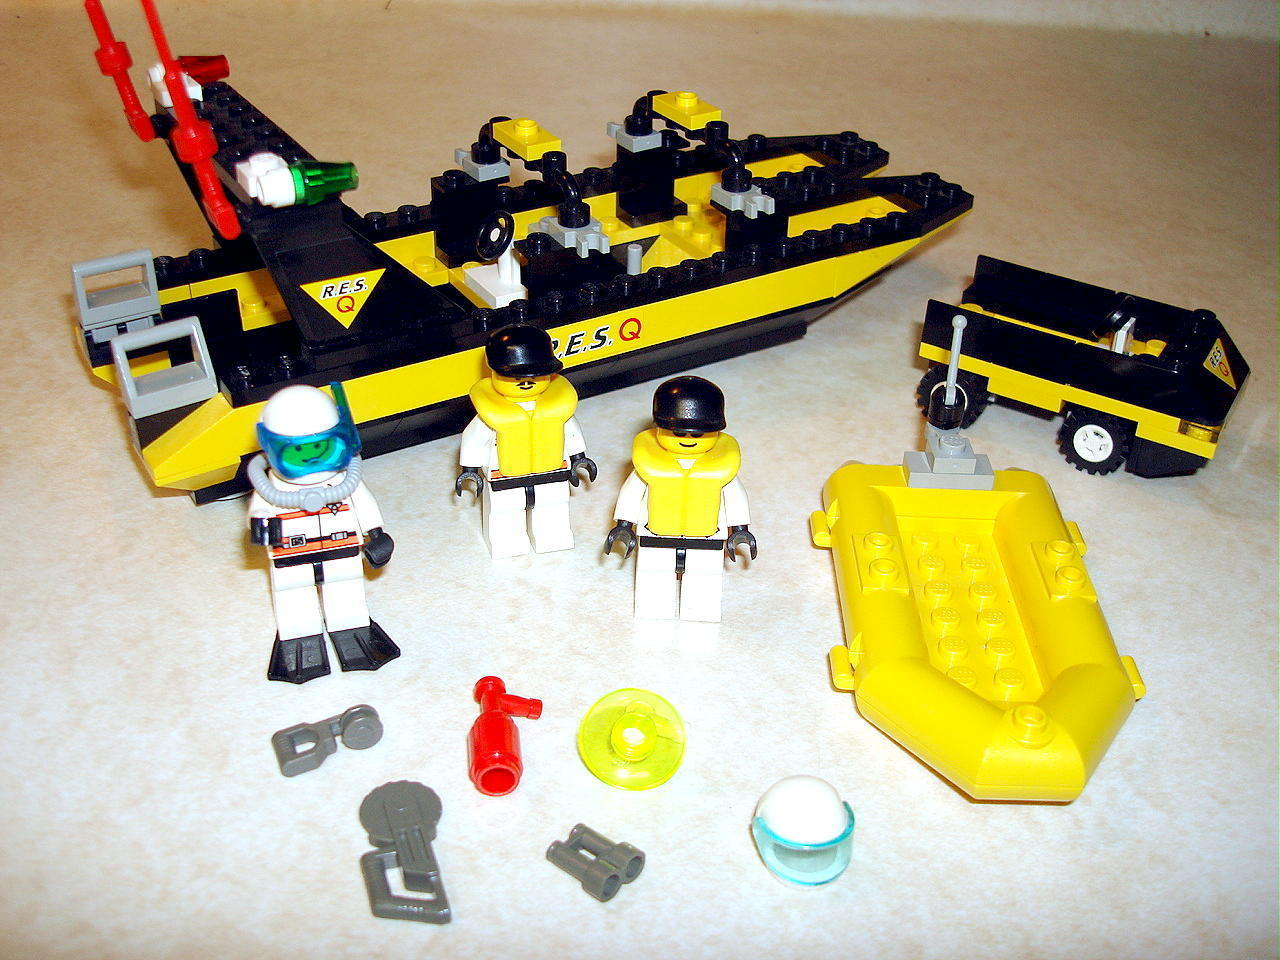 Lego Toy 3 : Lego river response resq team set block building toy